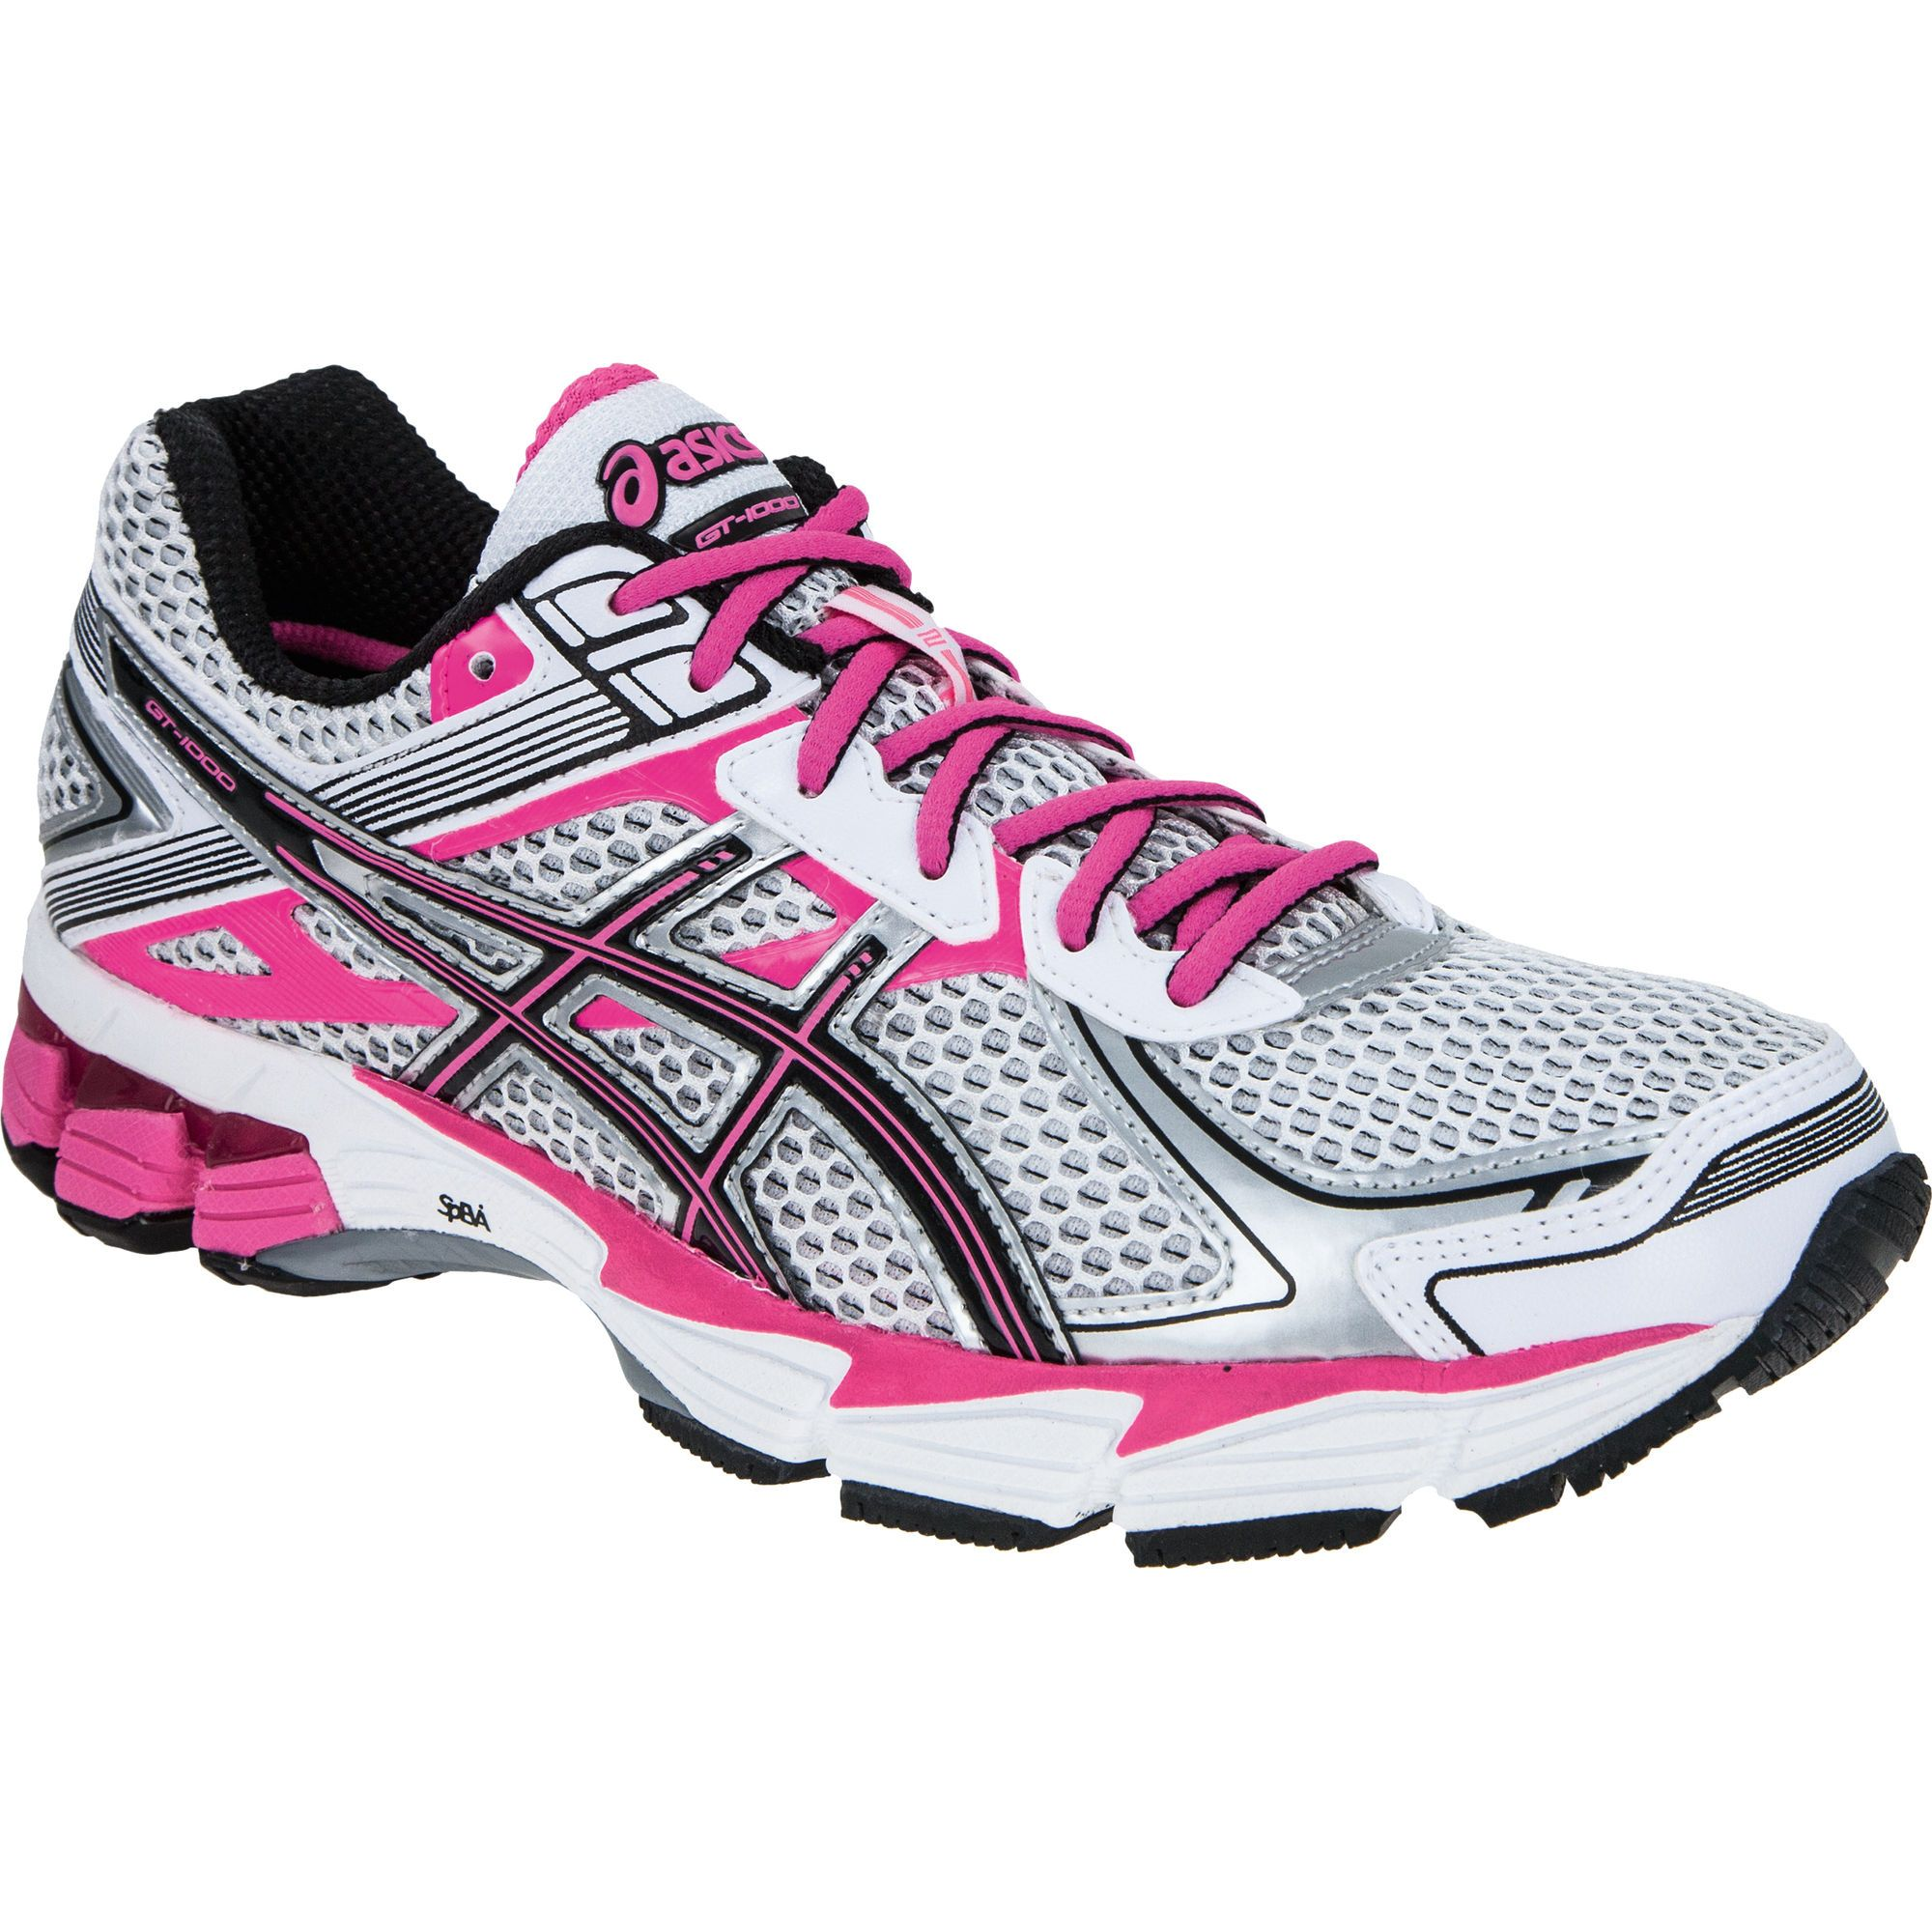 Gt-1000 2 Asics- Pink running shoes